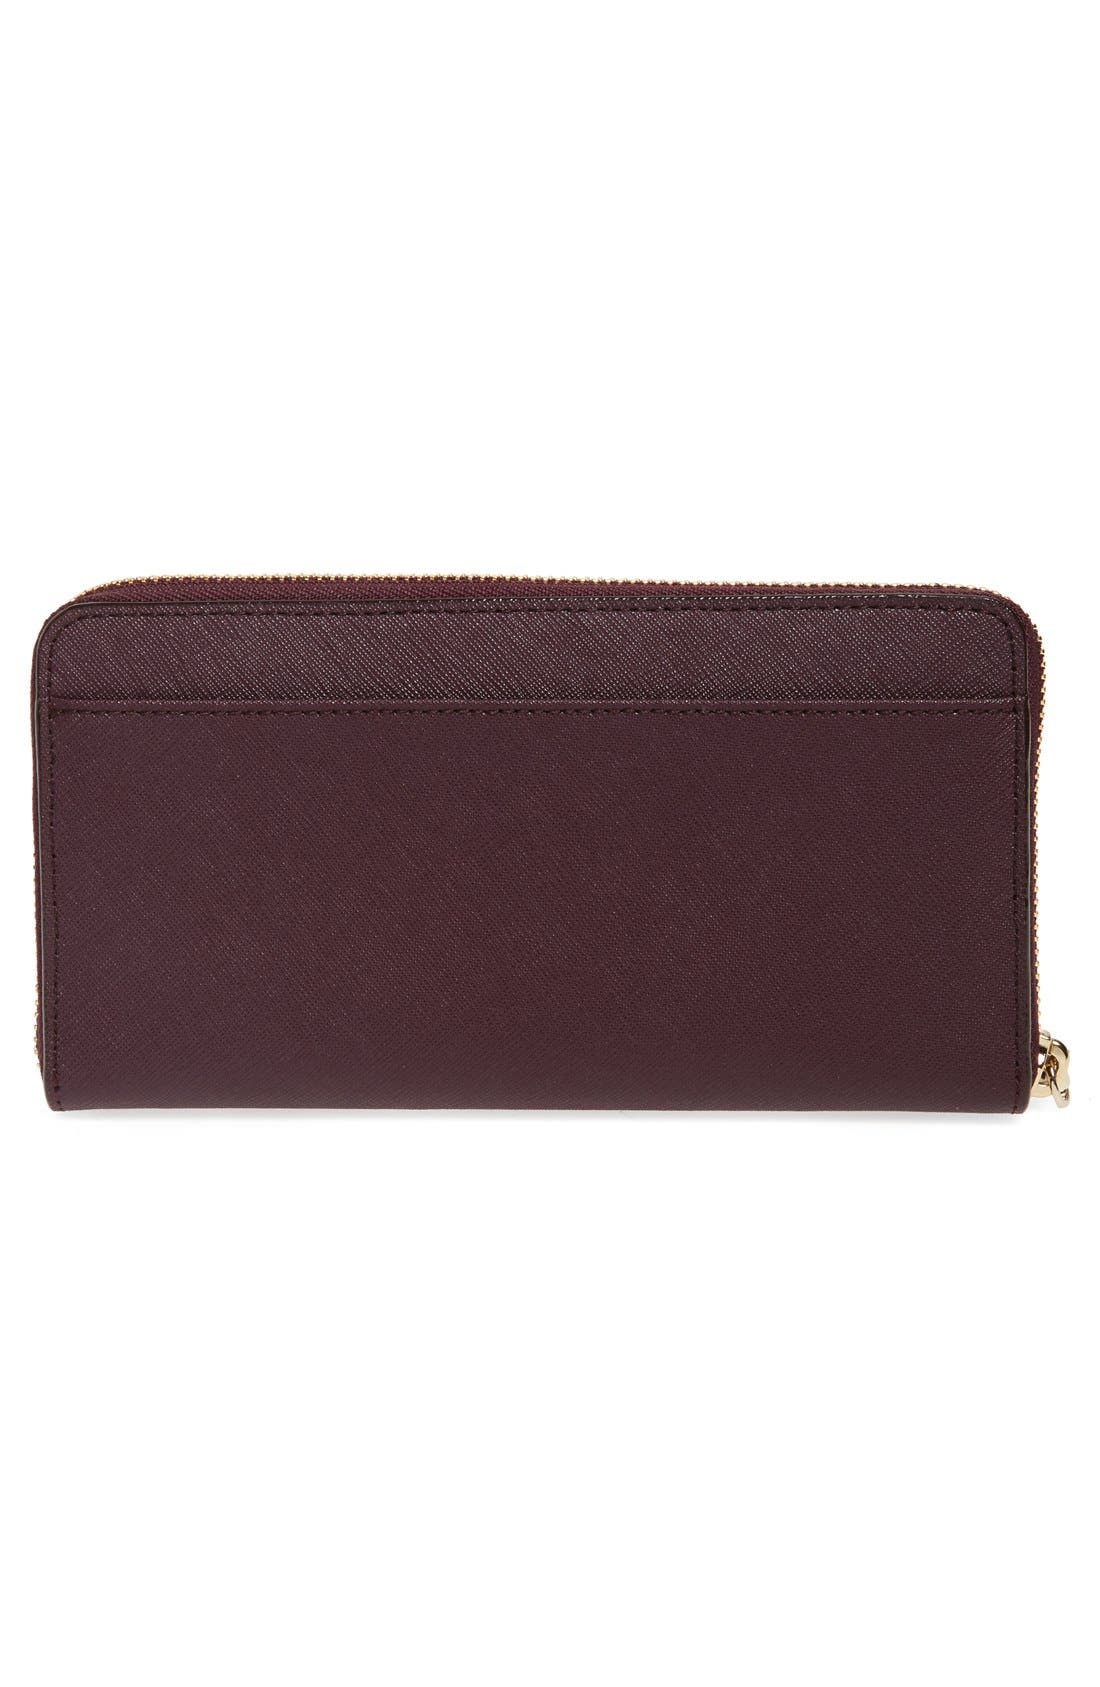 'cameron street - lacey' leather wallet,                             Alternate thumbnail 72, color,